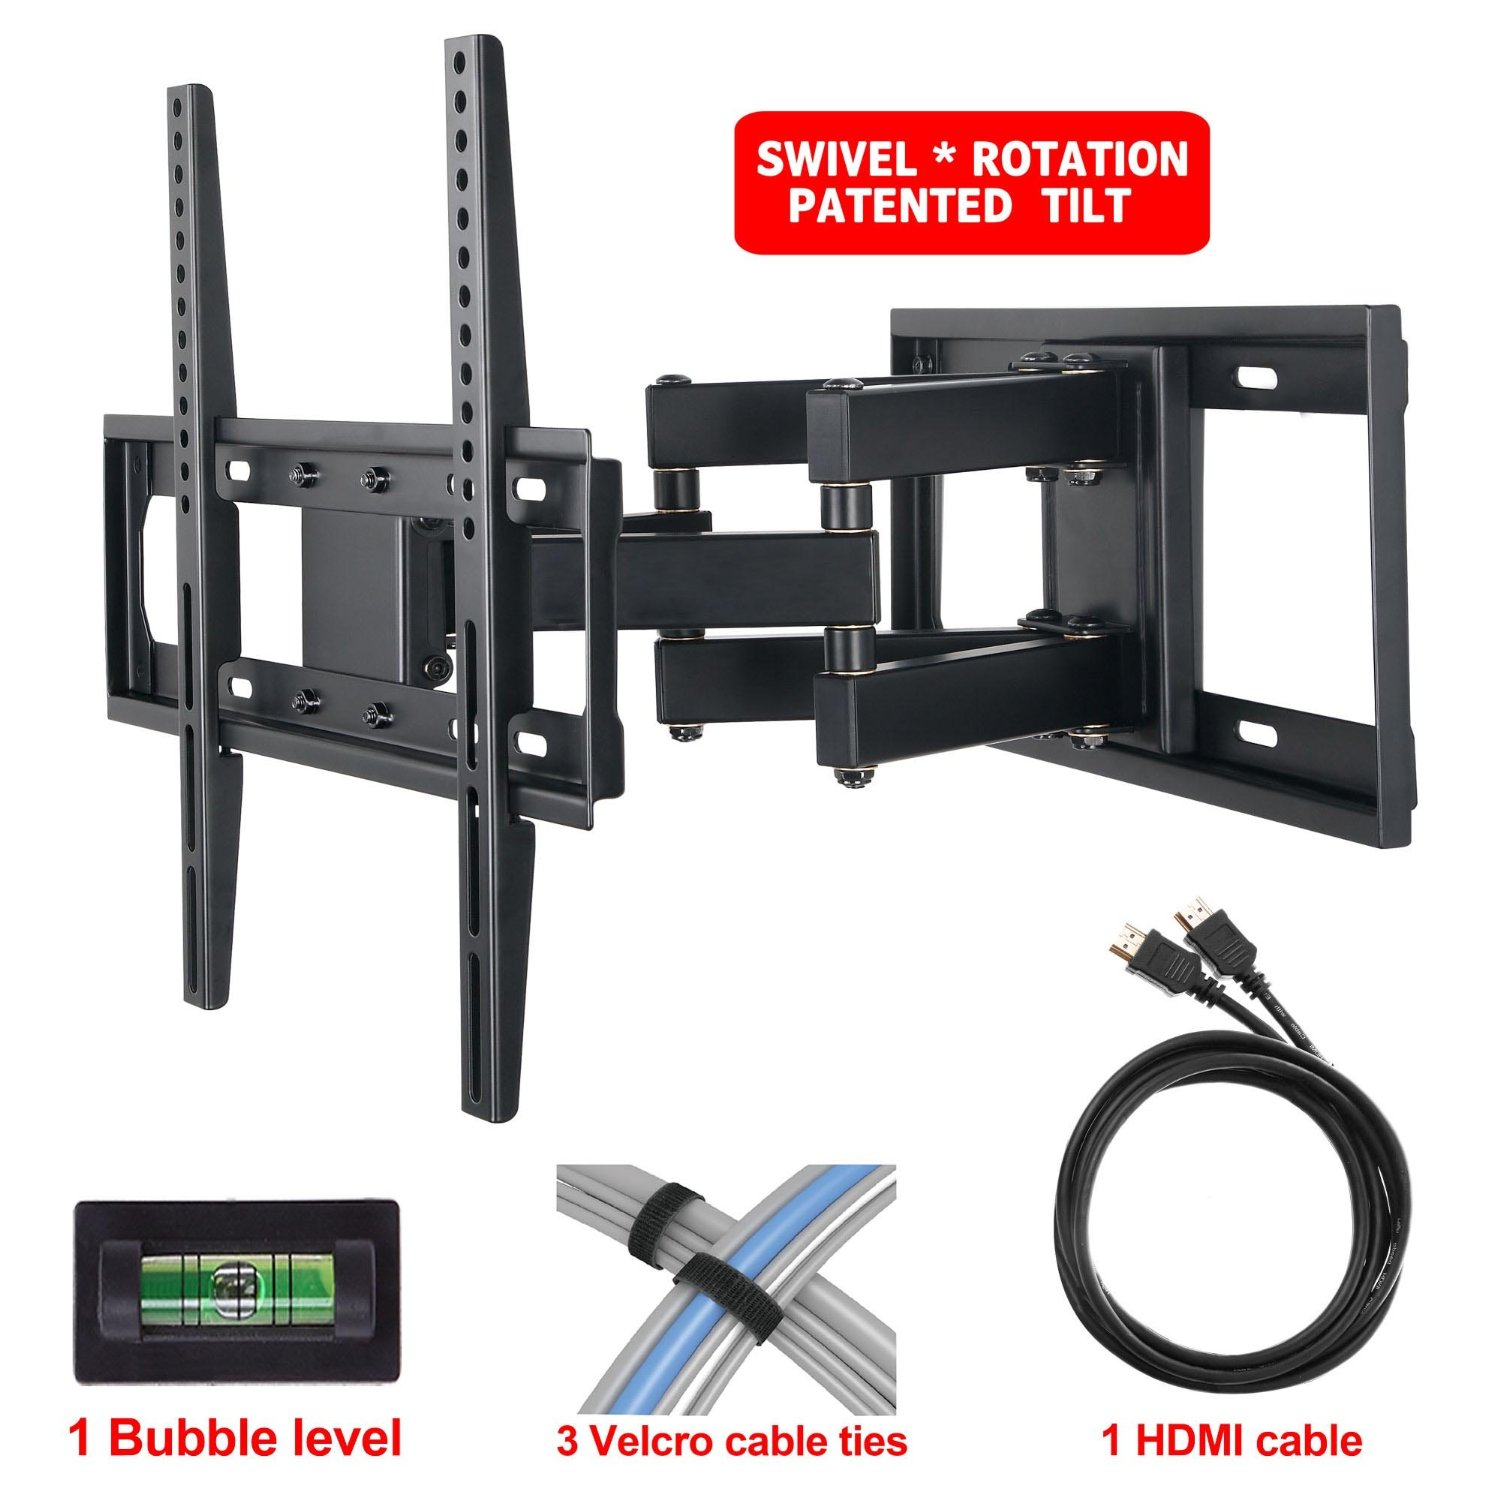 "Mounting Dream MD2380 TV Wall Mount Bracket with Full Motion Articulating Arm (16"" Extension) for most of 26-55 Inches LED, LCD and Plasma TVs up to VESA 400x400mm and 99 lbs, with Tilt, Swivel, and Rotation Adjustment, Including 6 ft HDMI Cable and Magnetic Bubble Level (For Samsung, Sony, Tos"